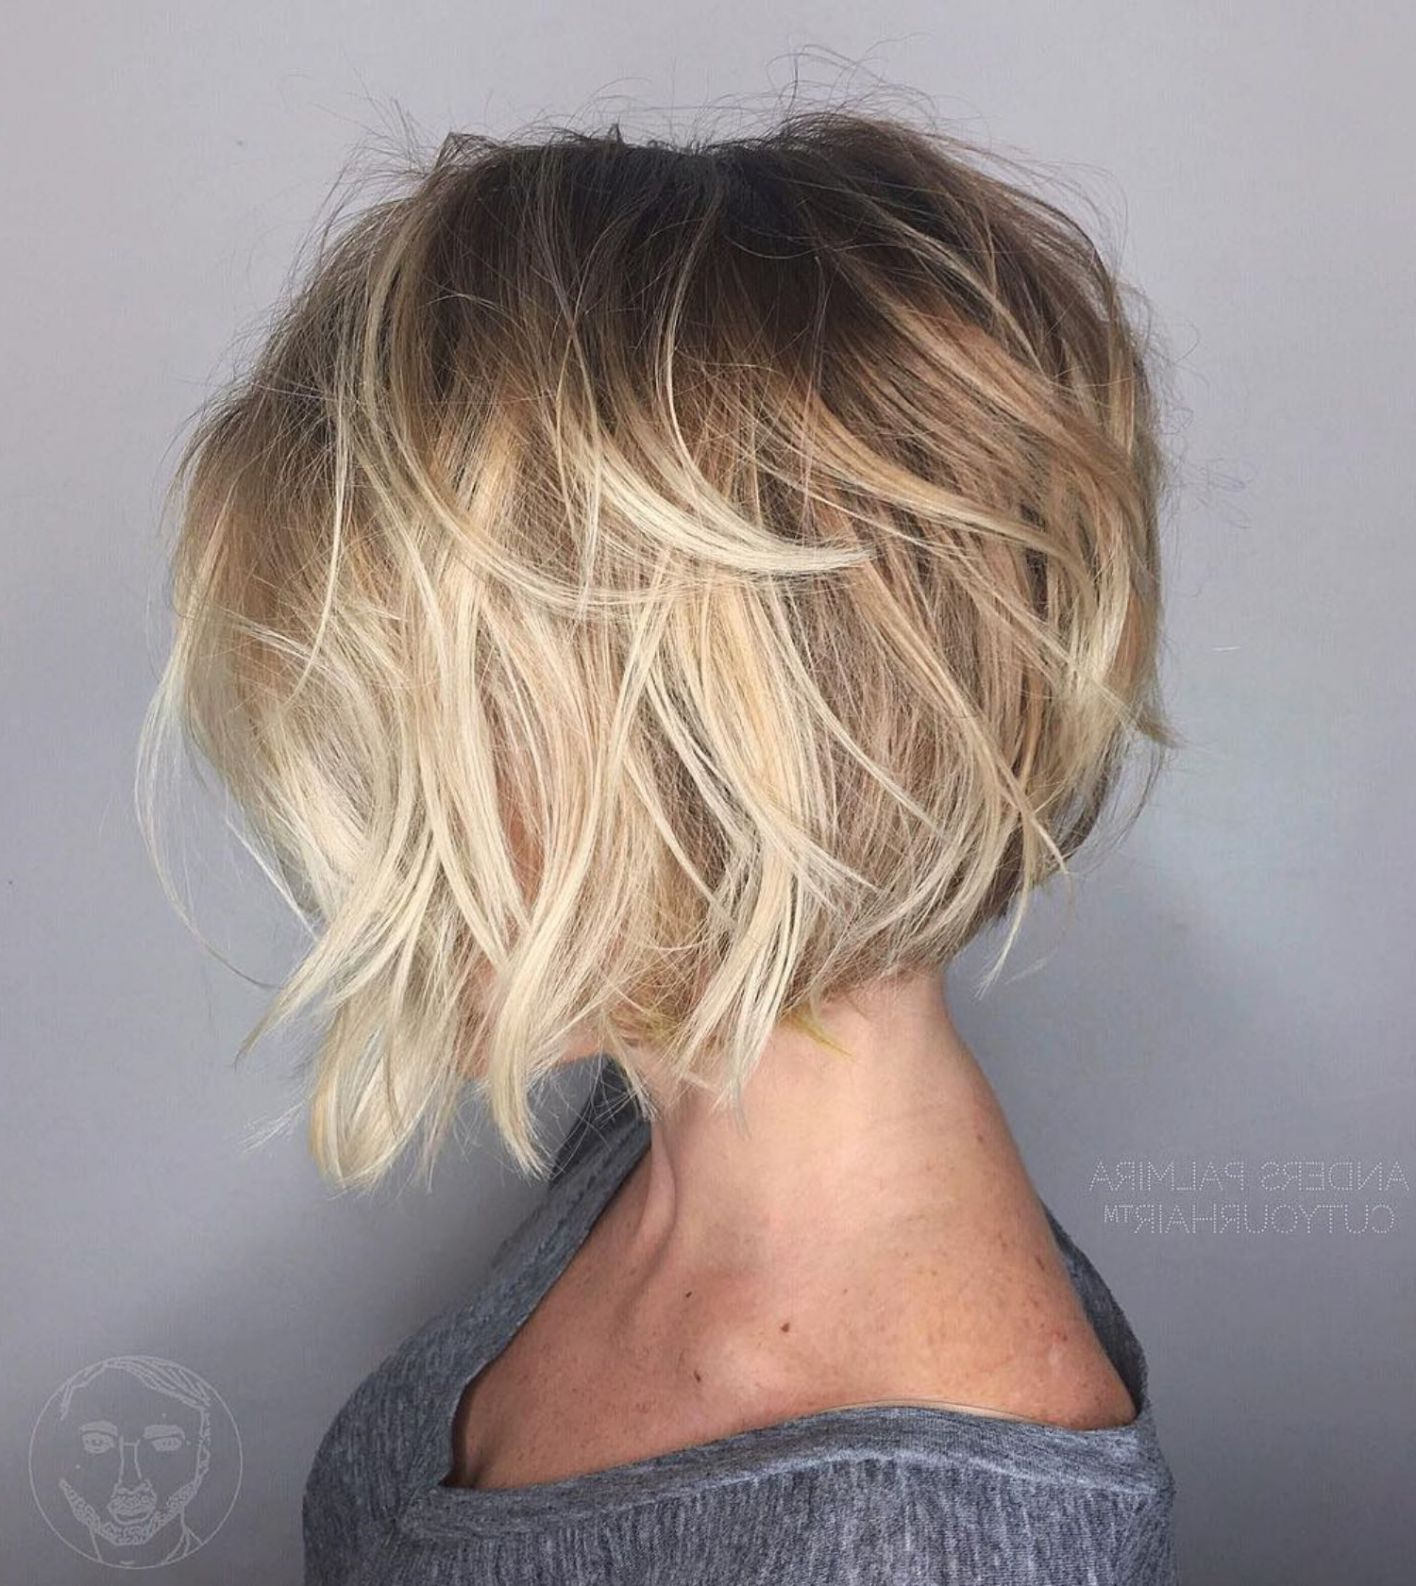 Hairstyles : Shaggy Blonde Bob With Highlights Latest 60 Inside Short Highlighted Shaggy Haircuts (View 17 of 20)